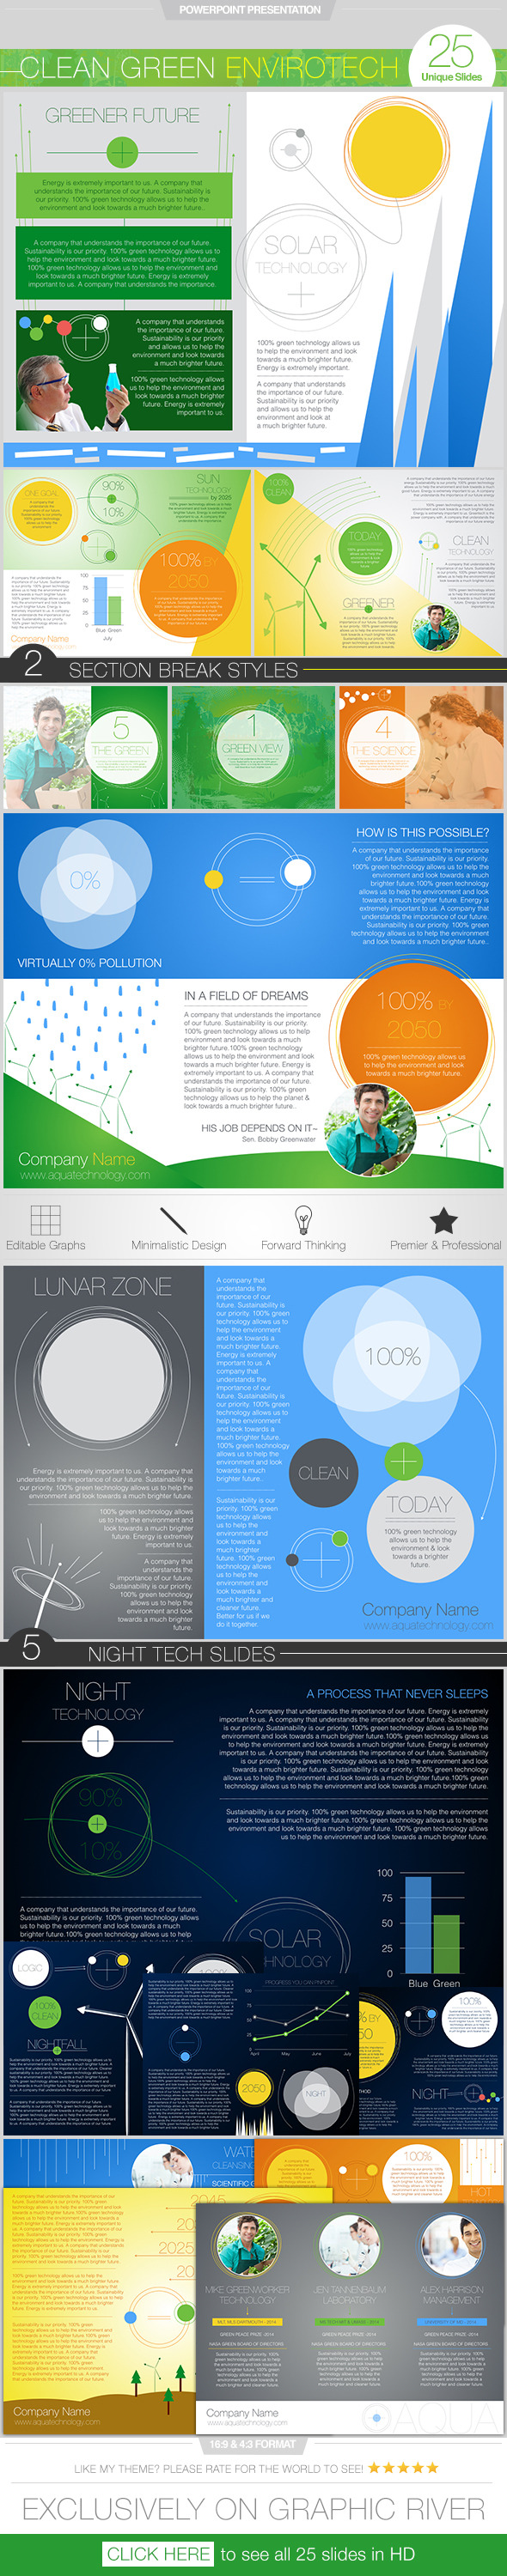 GraphicRiver Clean Green Envirotech PowerPoint Presentation 11281501